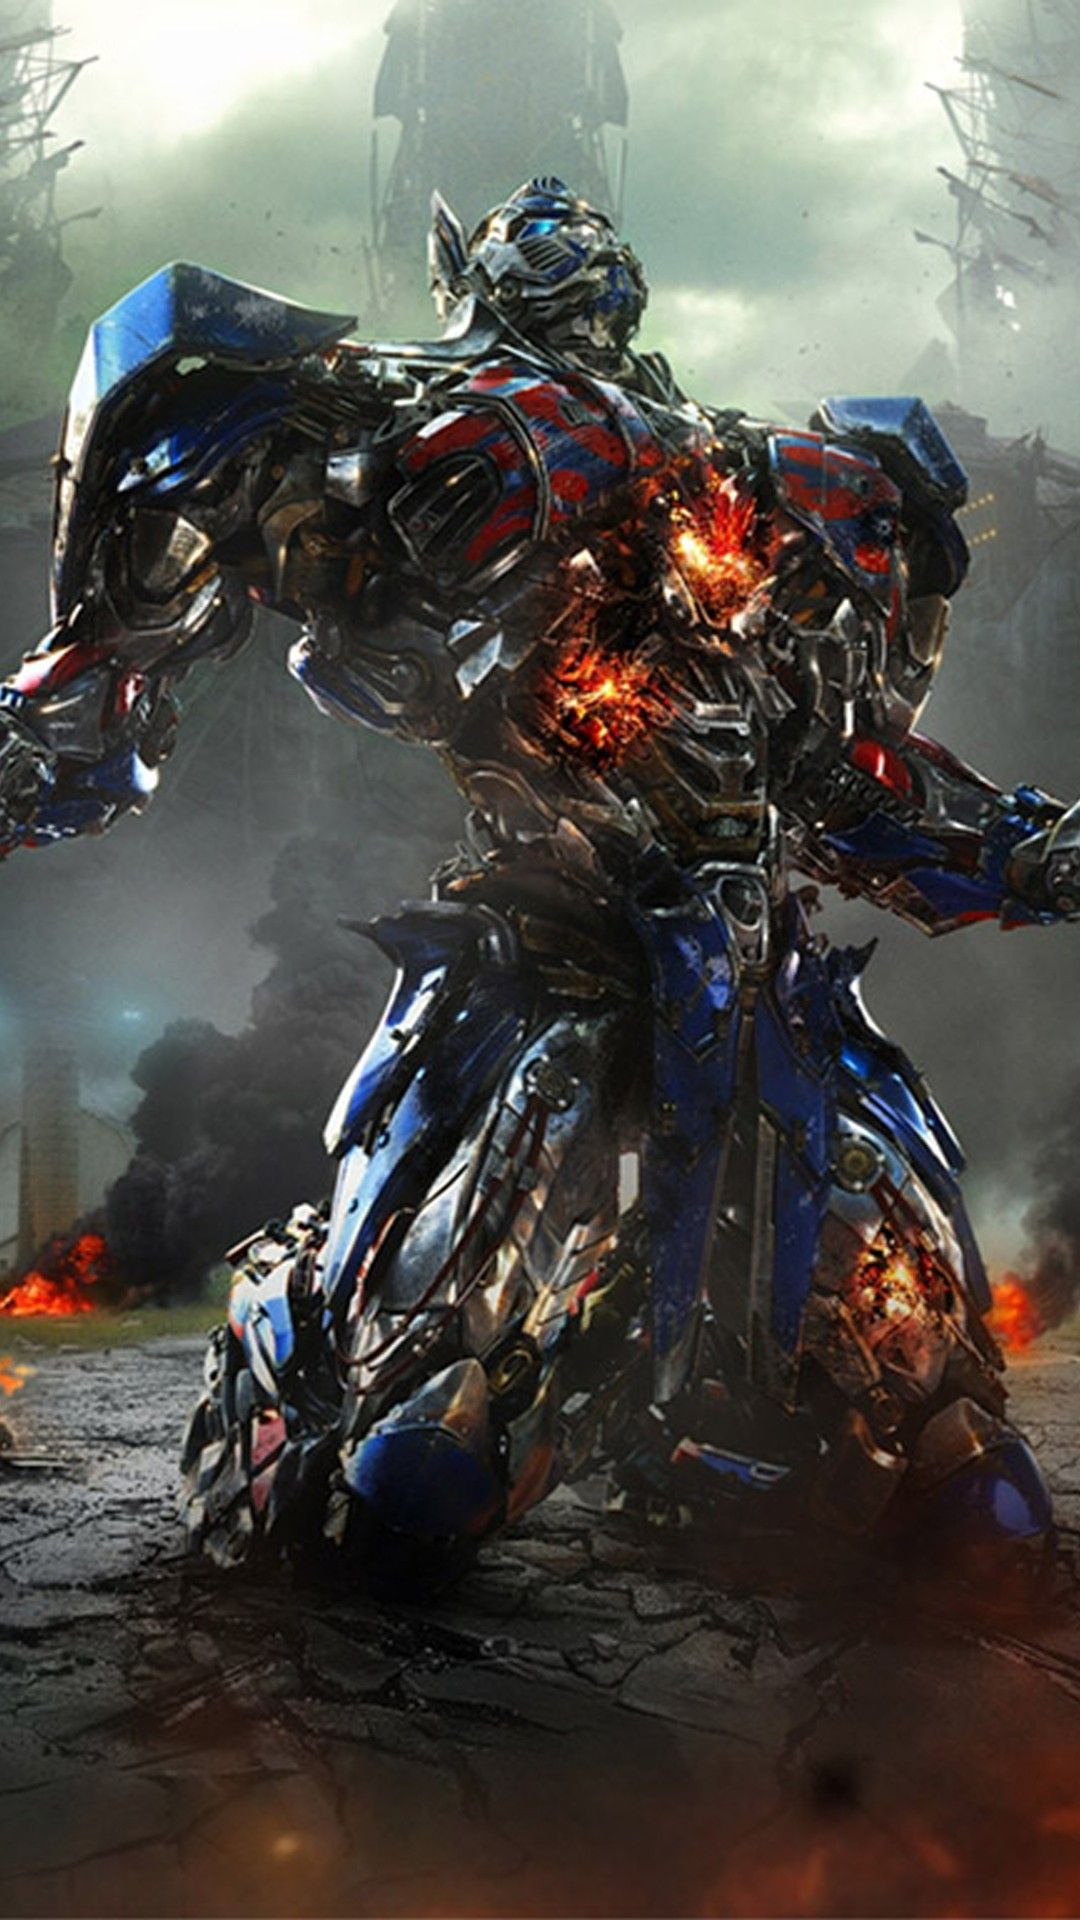 Movies Iphone 6 Plus Wallpapers Transformers Optimus Prime Movie Iphone 6 Plus Hd Wallpaper Movies Iph Imagenes Transformers Transformers Tigre De Acuarela